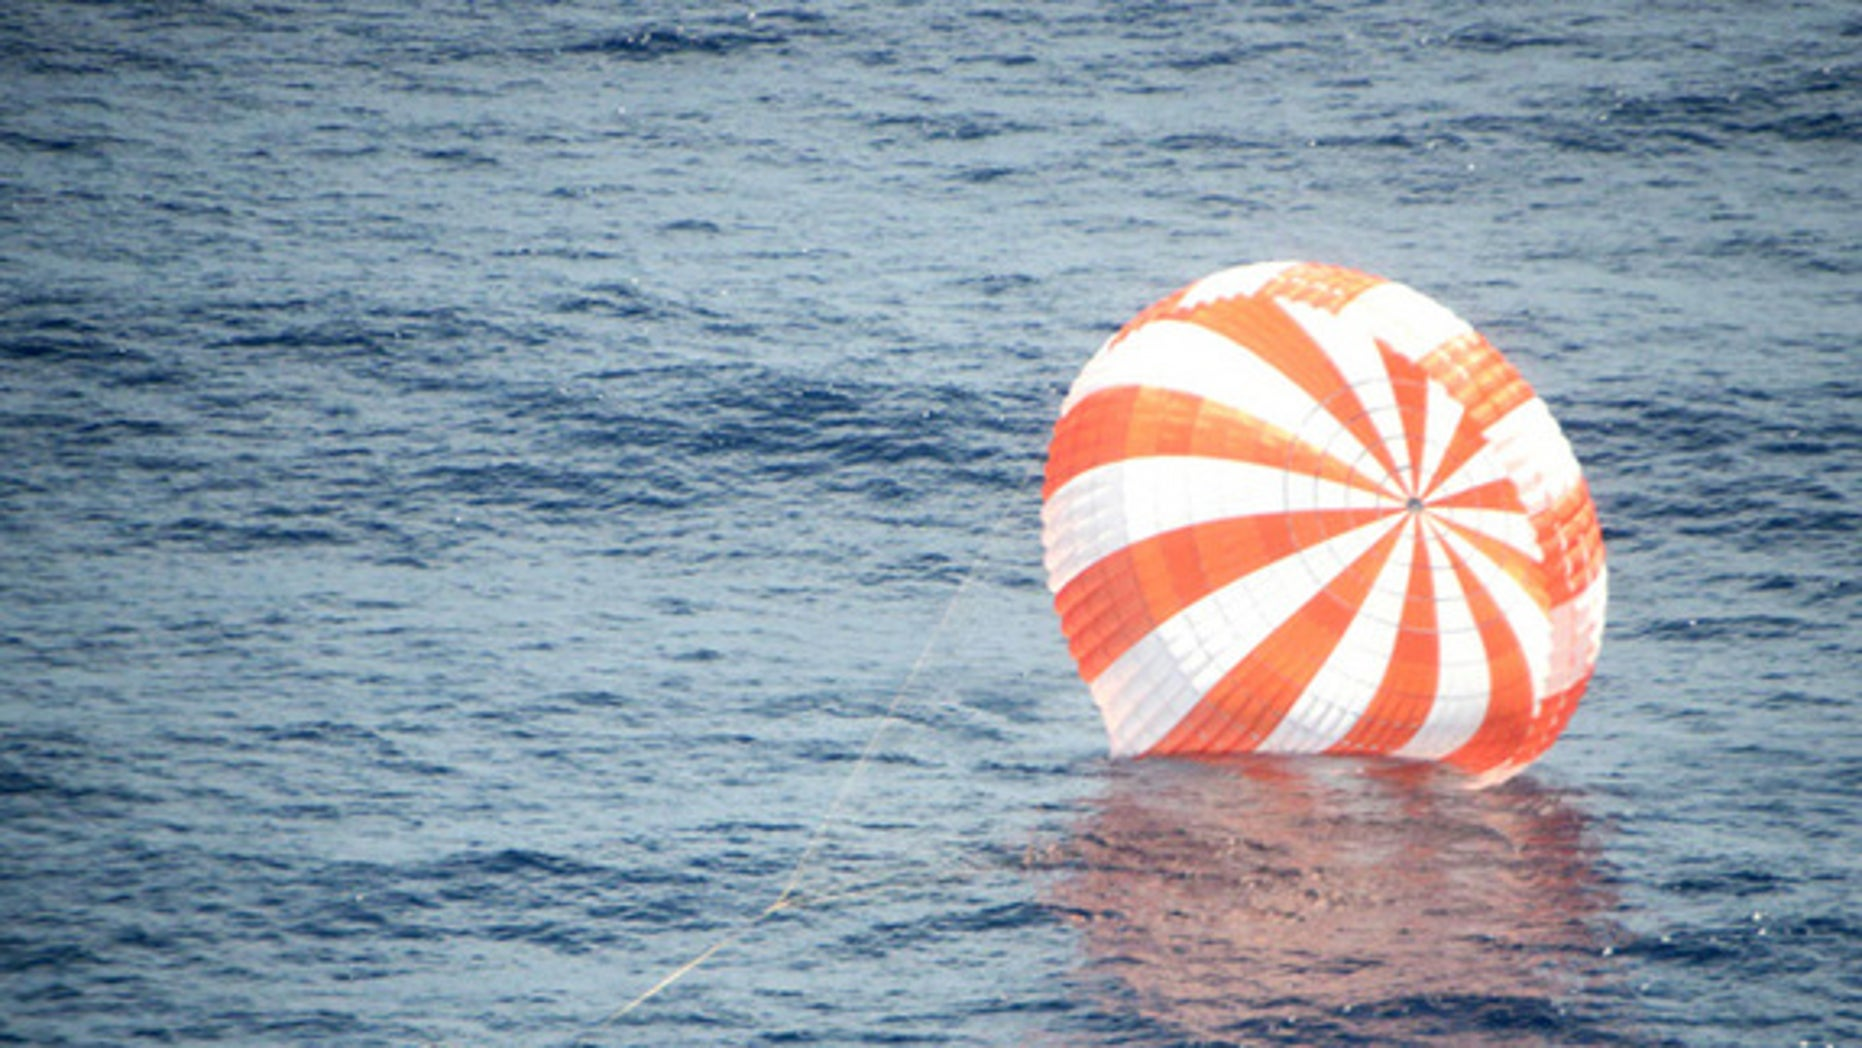 The SpaceX Dragon capsule splashes down in the Pacific Ocean Oct. 28, 2012 after its first caro delivery mission to the International Space Station.